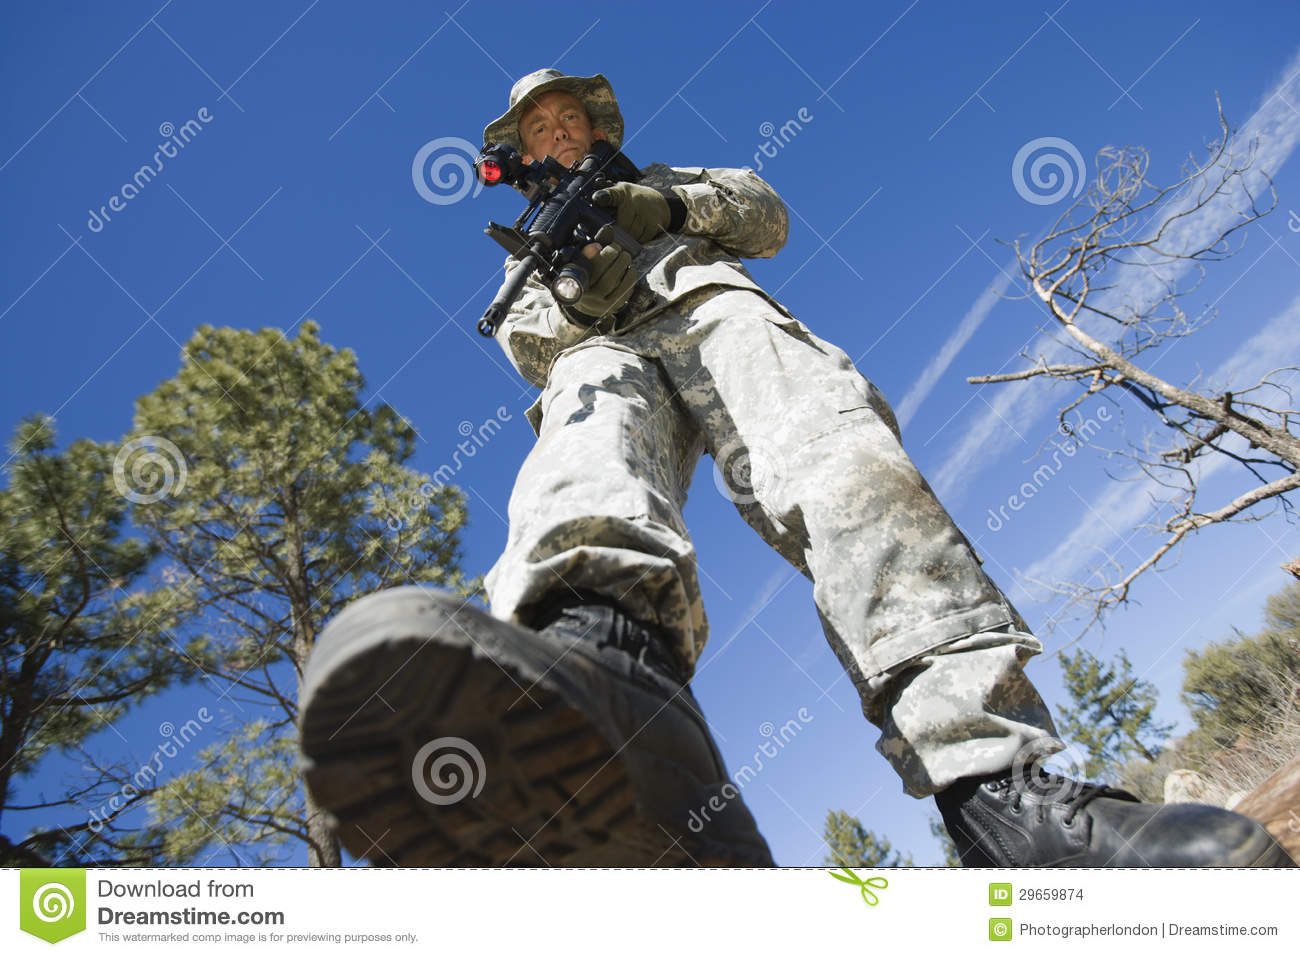 Low Angle Portrait Of Armed Soldier Stock Images - Image: 29659874